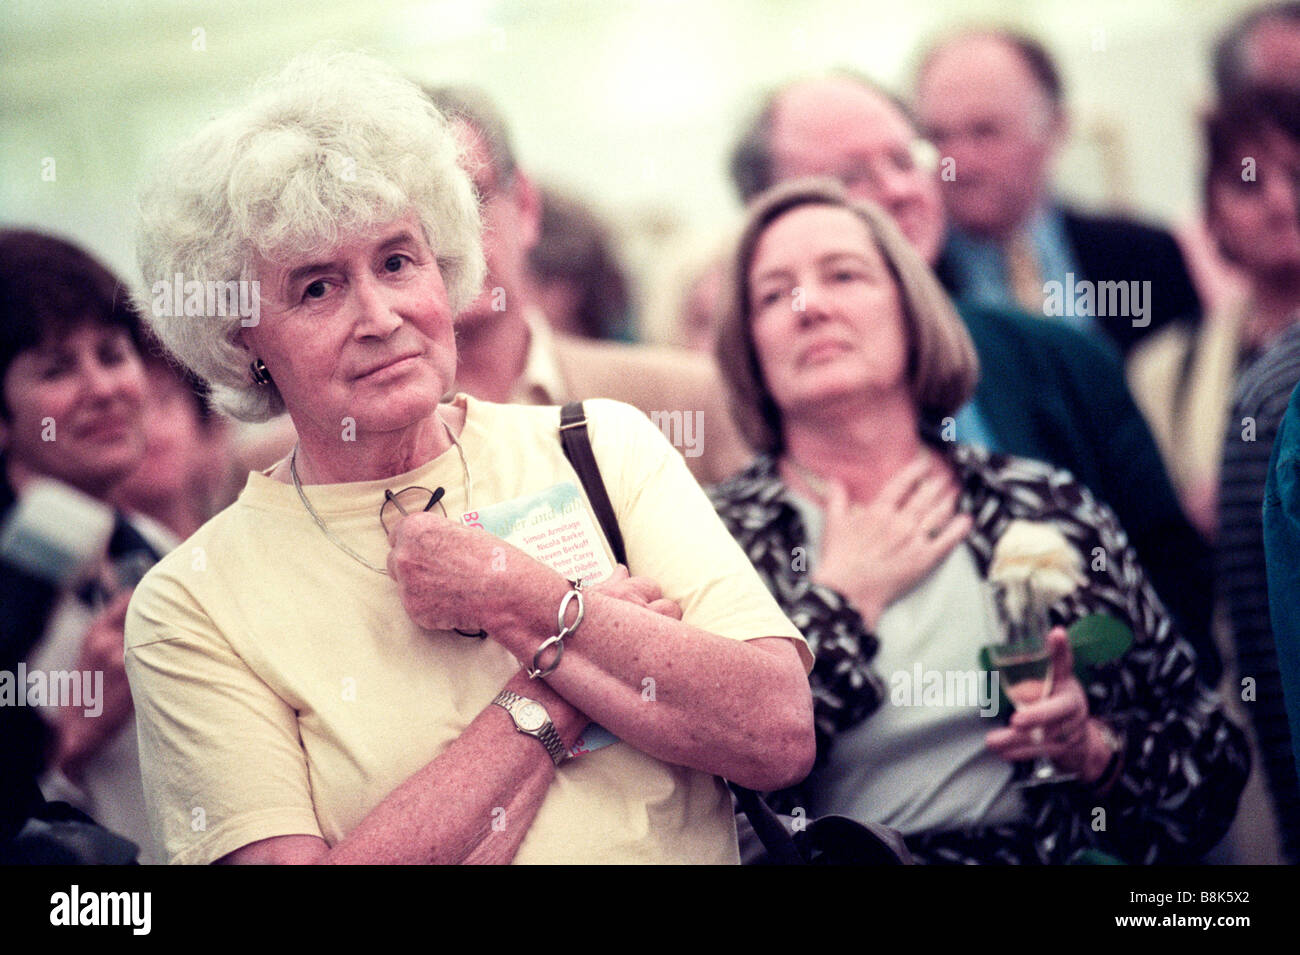 welsh-author-jan-morris-pictured-at-the-1998-hay-festival-hay-on-wye-B8K5X2.jpg